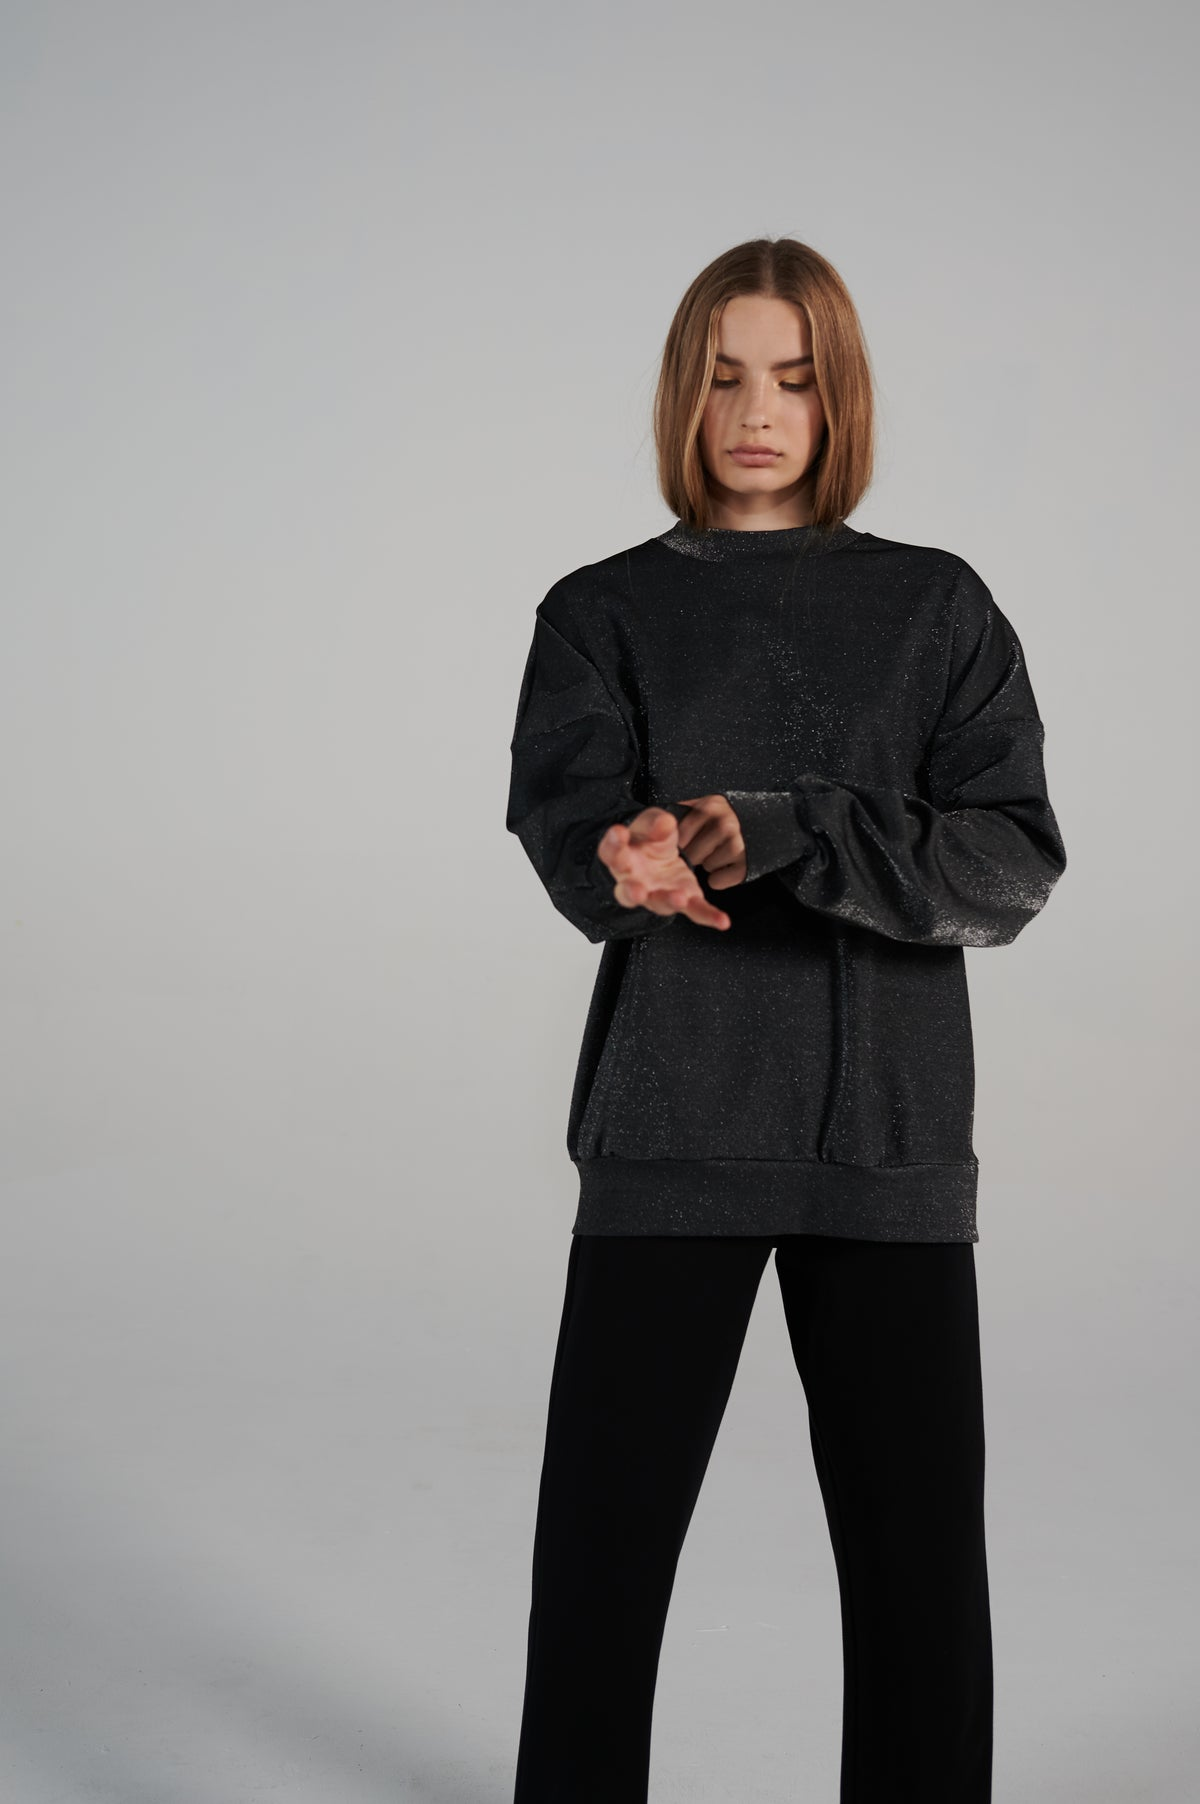 sparkle-oversize-sweater-metallic-fabric-boxy-shape-long-sleeves.jpg